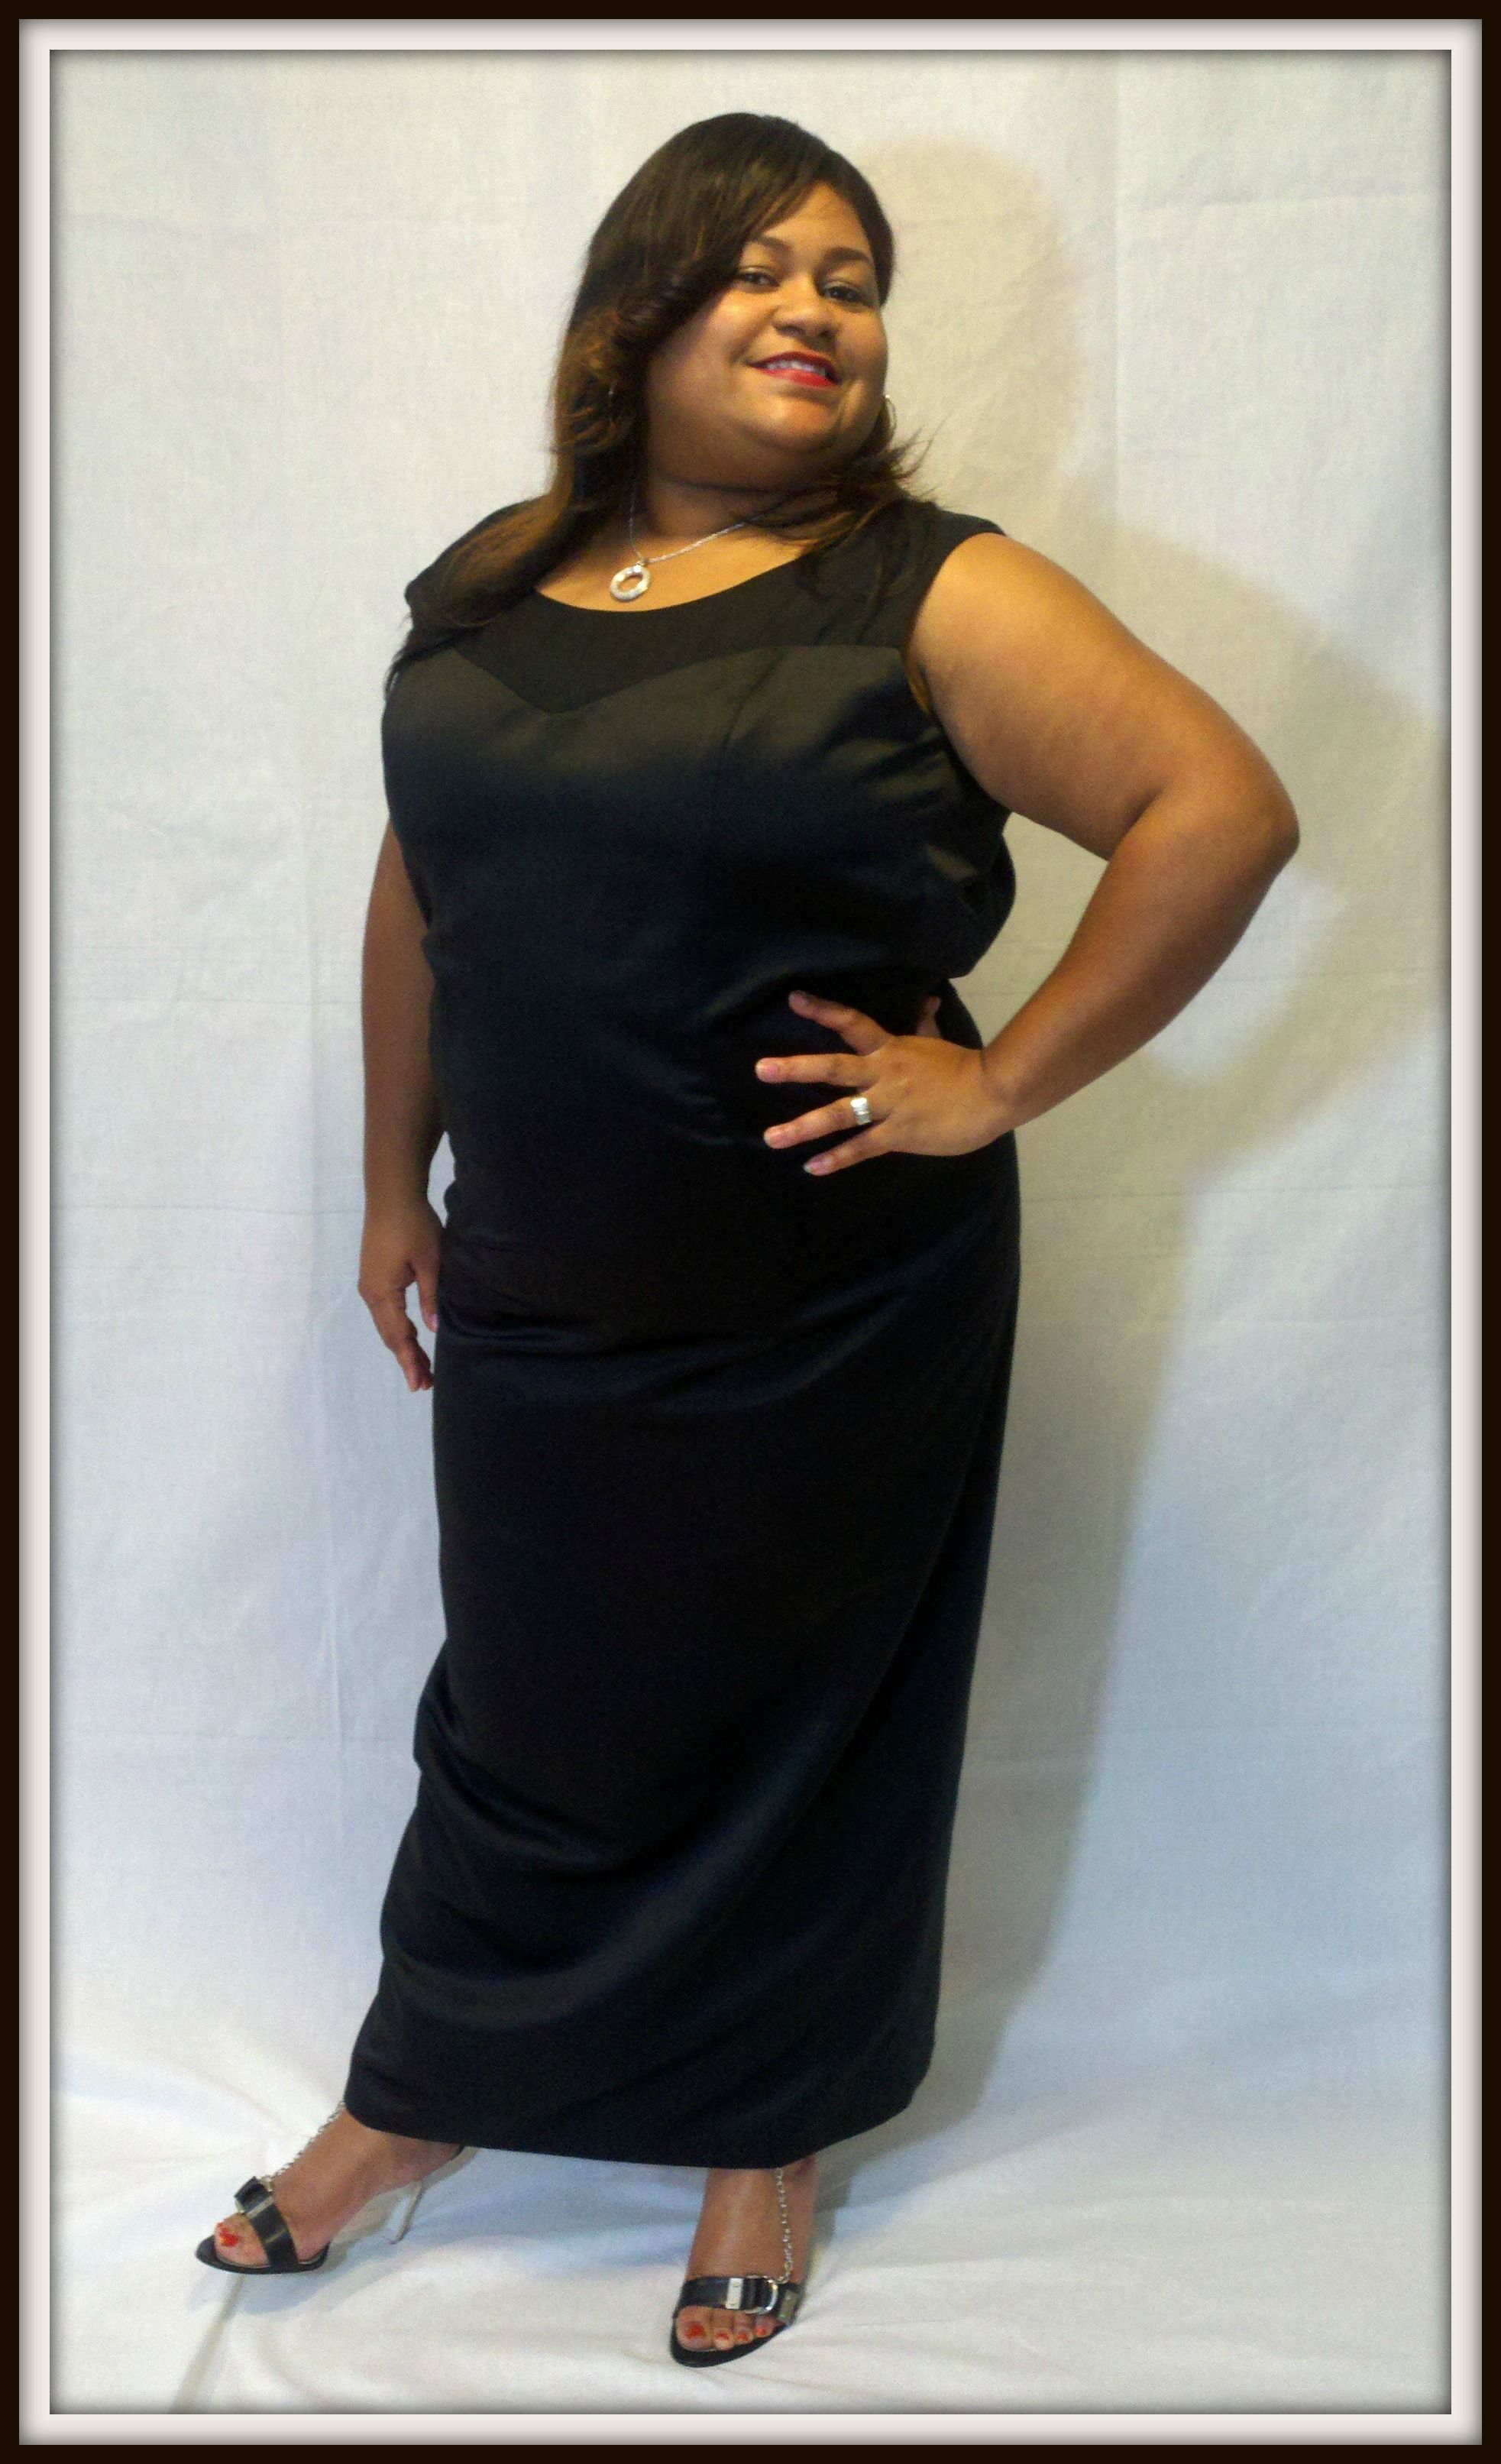 CGC Model Patrina King getting her diva on during the photo shoot of ...